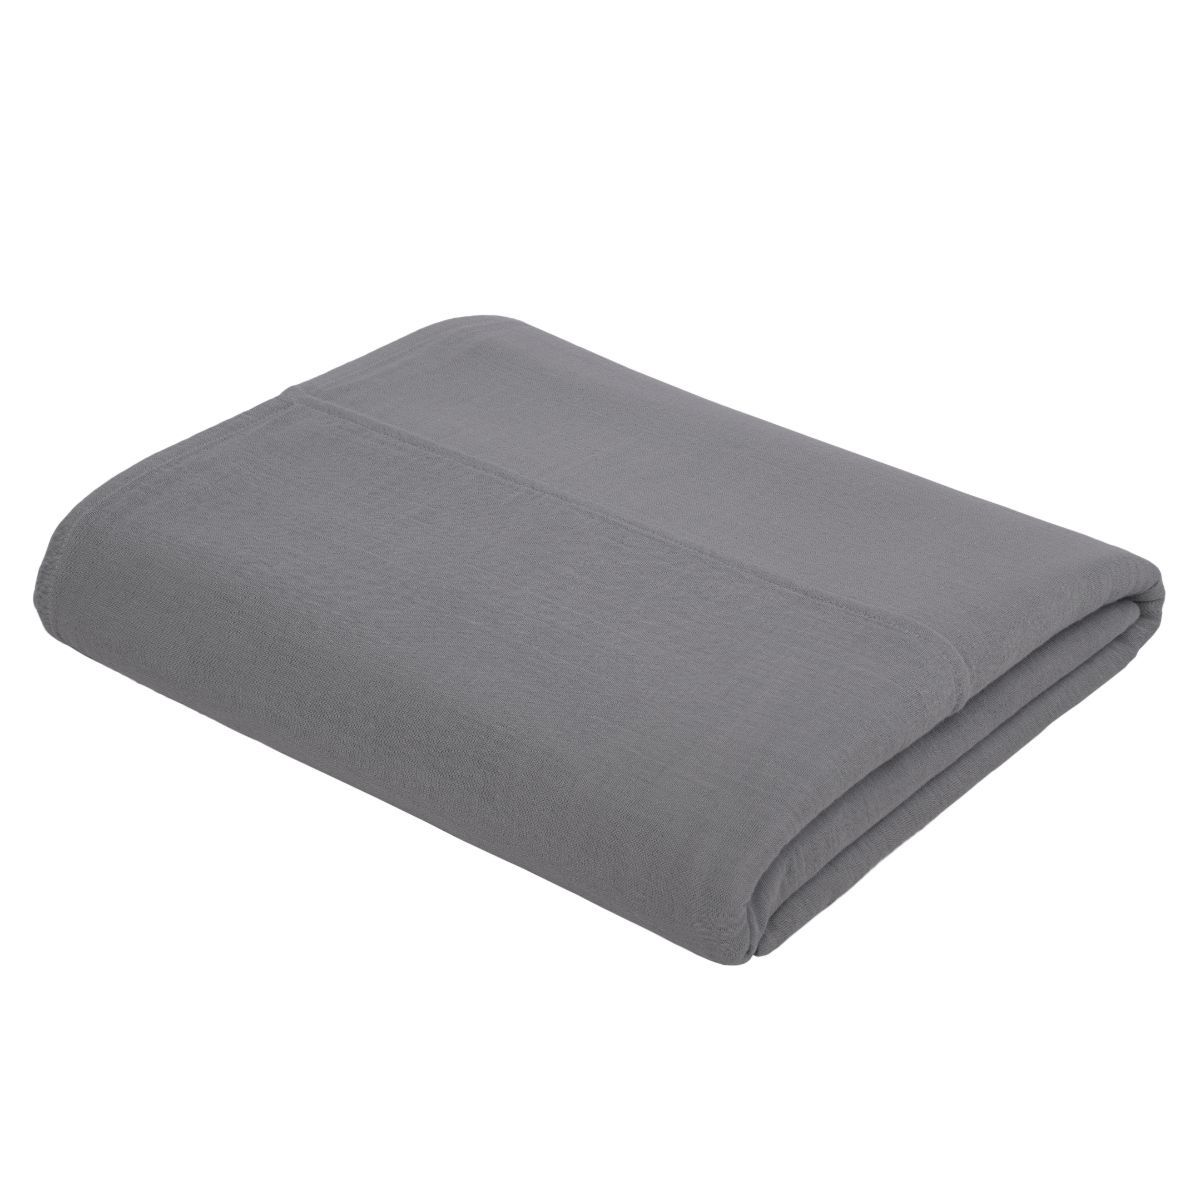 Numero 74 Top Flat Sheet Plain stone grey